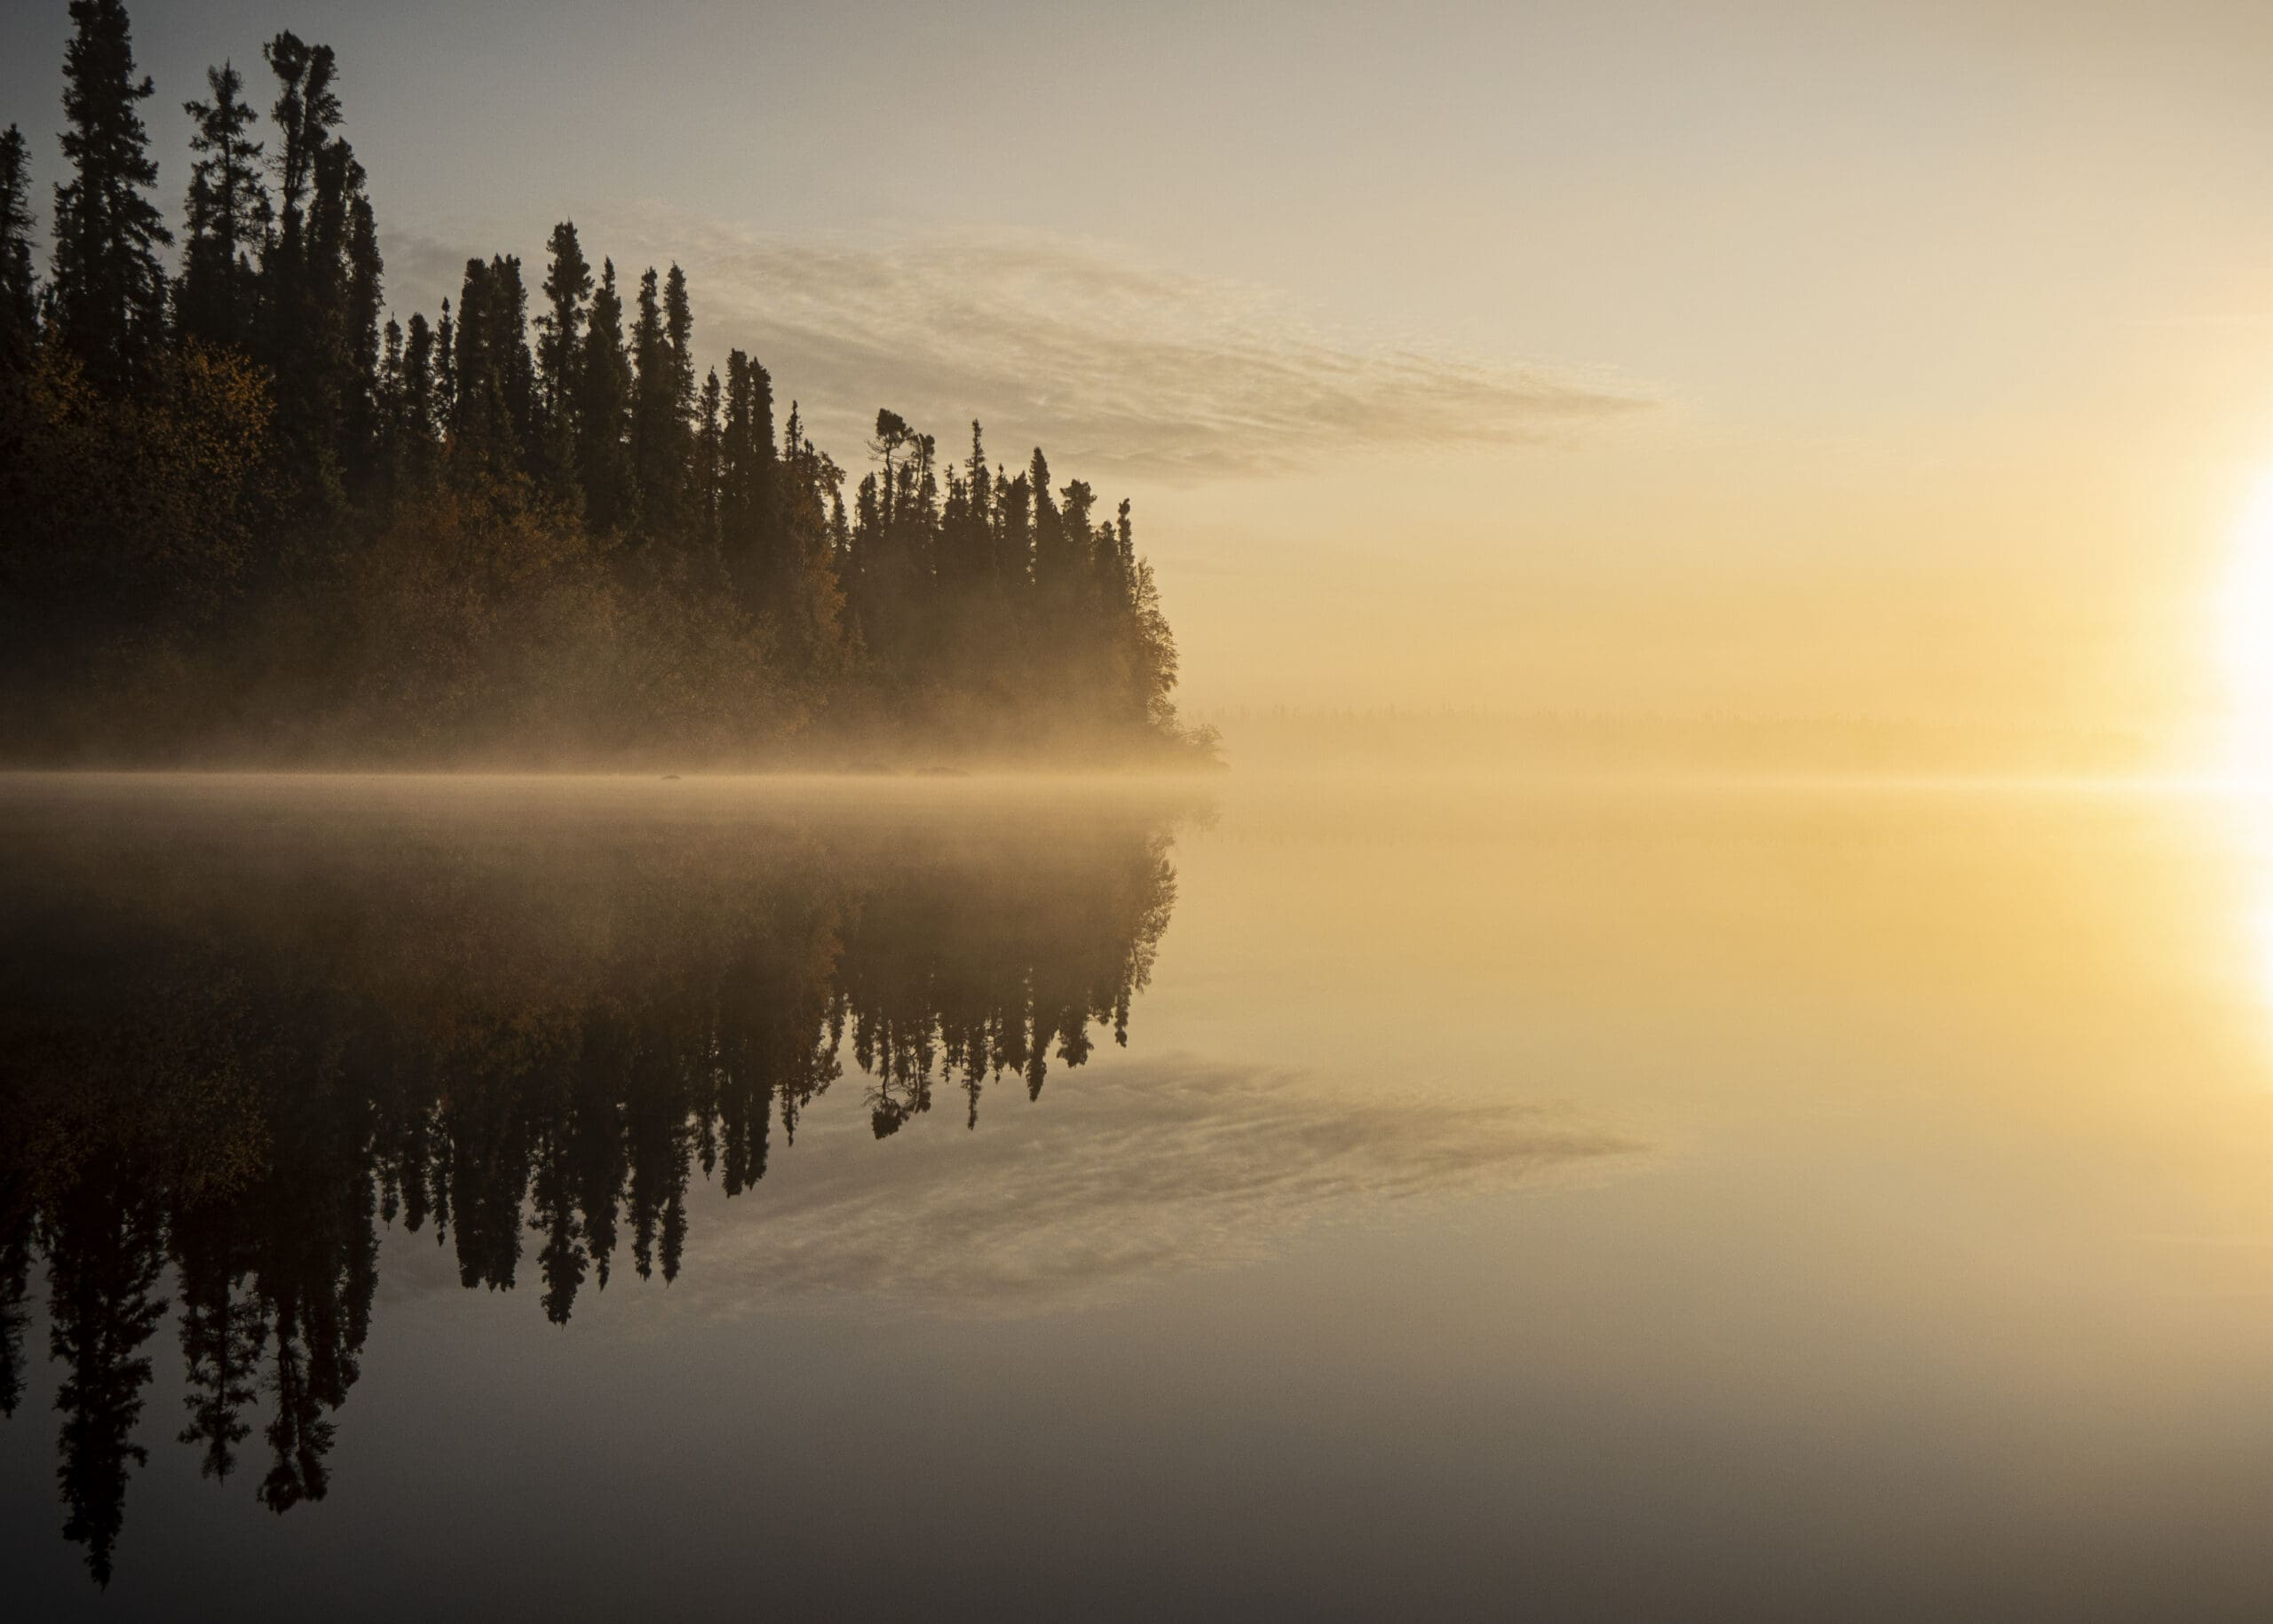 Reflection of trees in water at misty sunrise